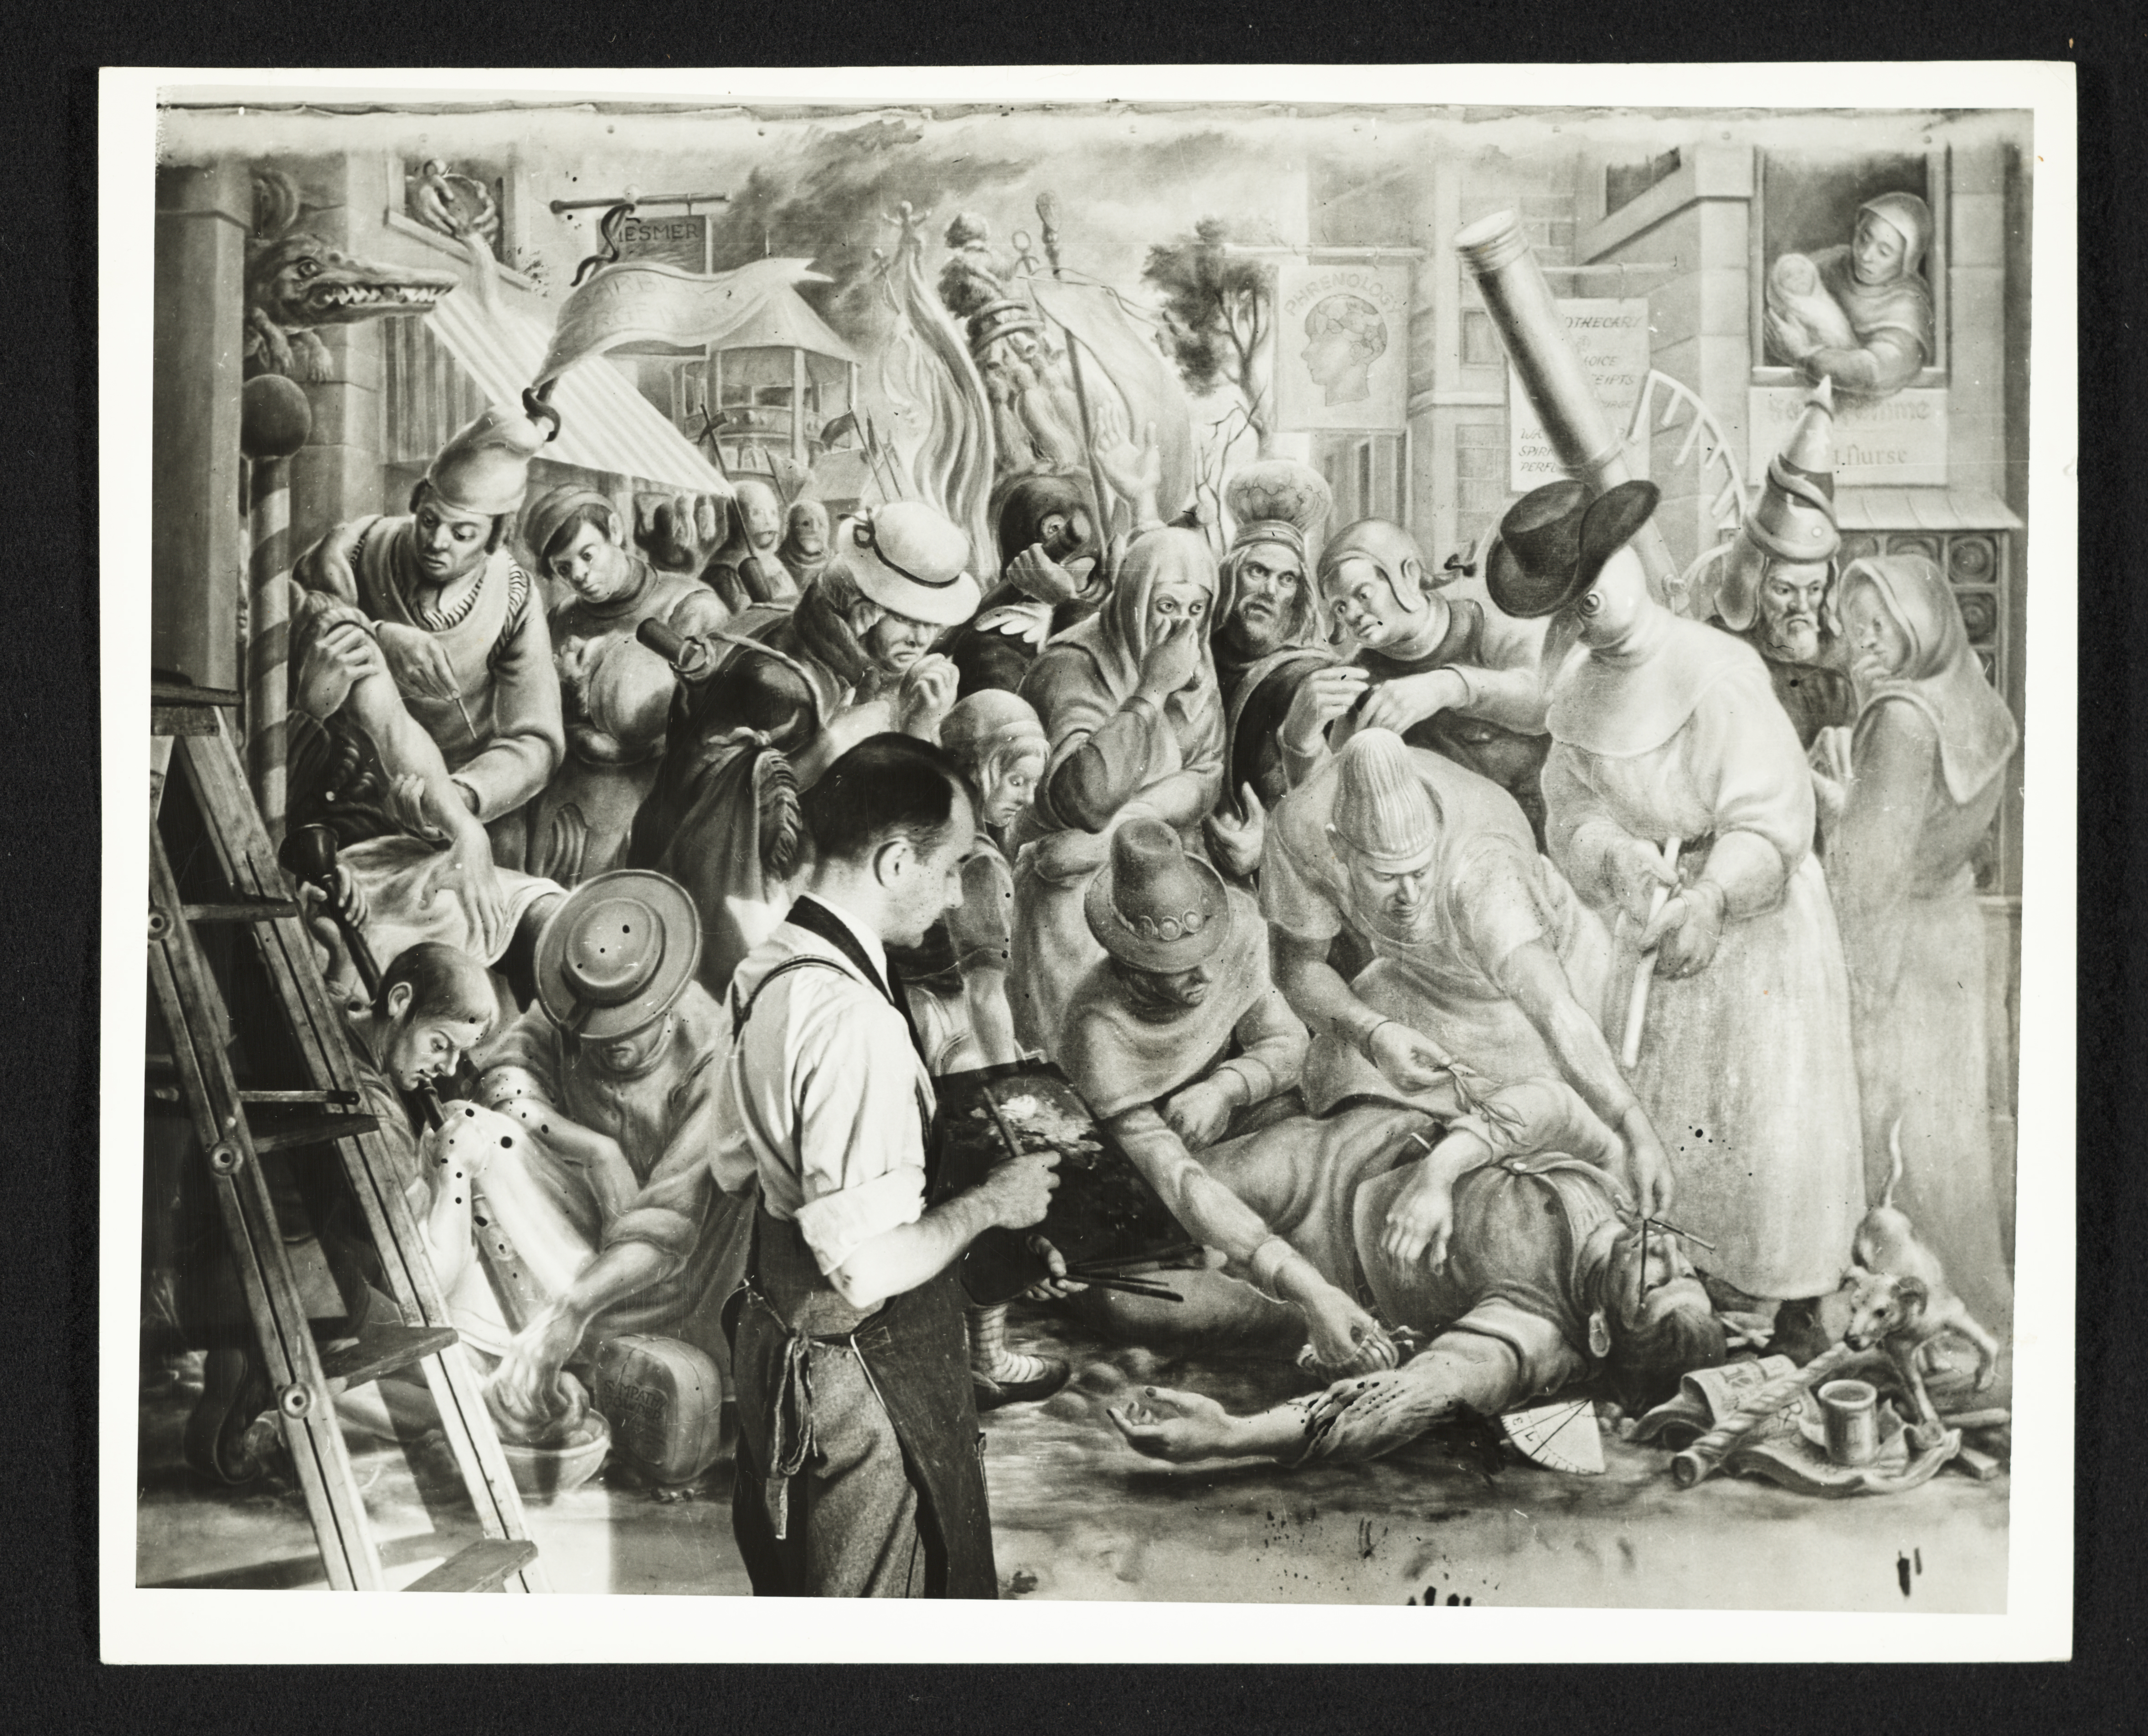 american art during the great depression They believed that the solution to urban problems in american life and the great depression was for the united distress during the great depression.